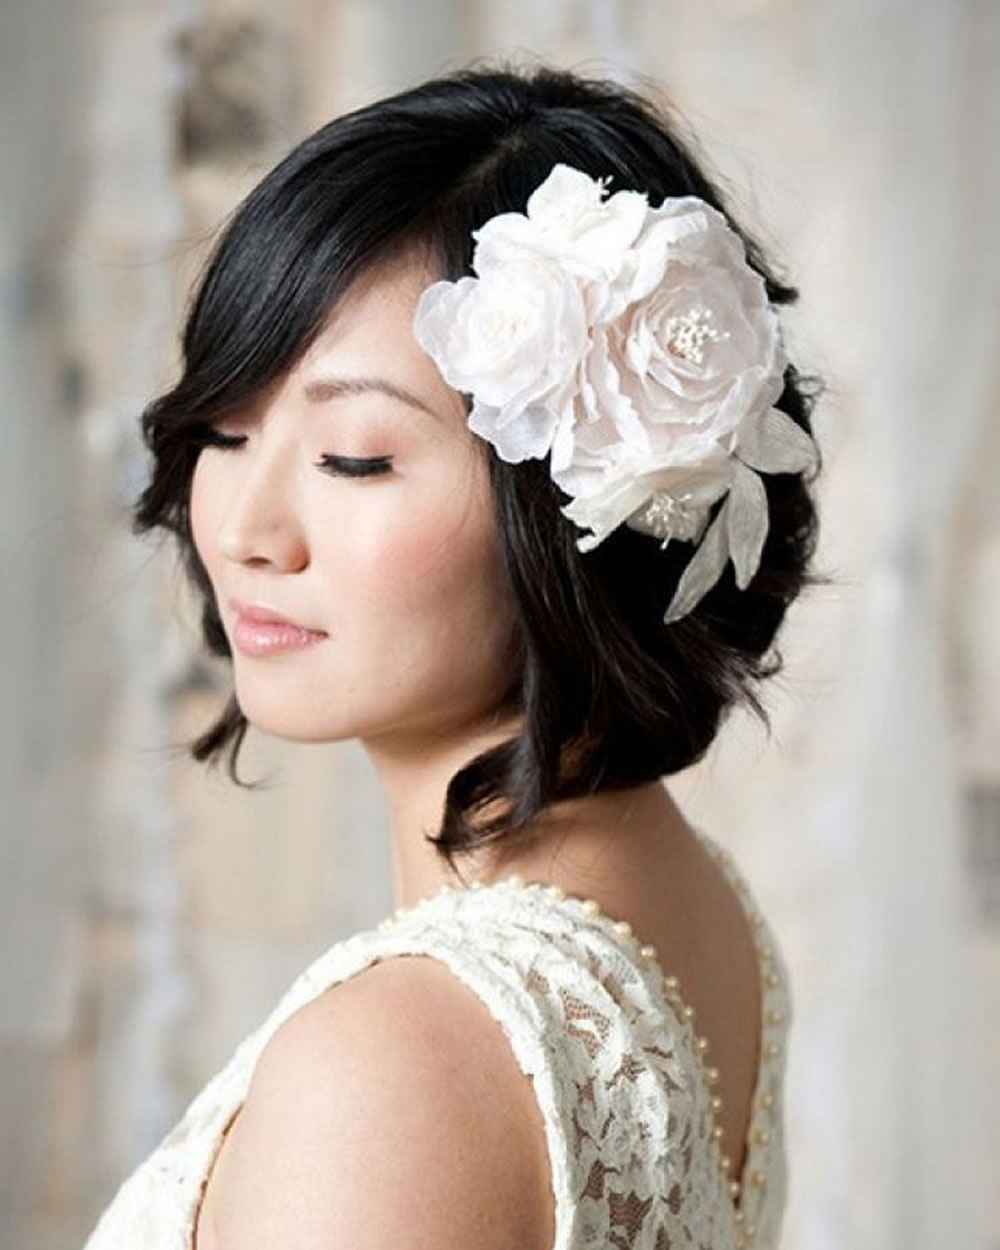 2018 Wedding Hairstyles And Make Up Guide For Short Hair – Page 2 Regarding Bridal Hairstyles Short Hair (View 11 of 25)